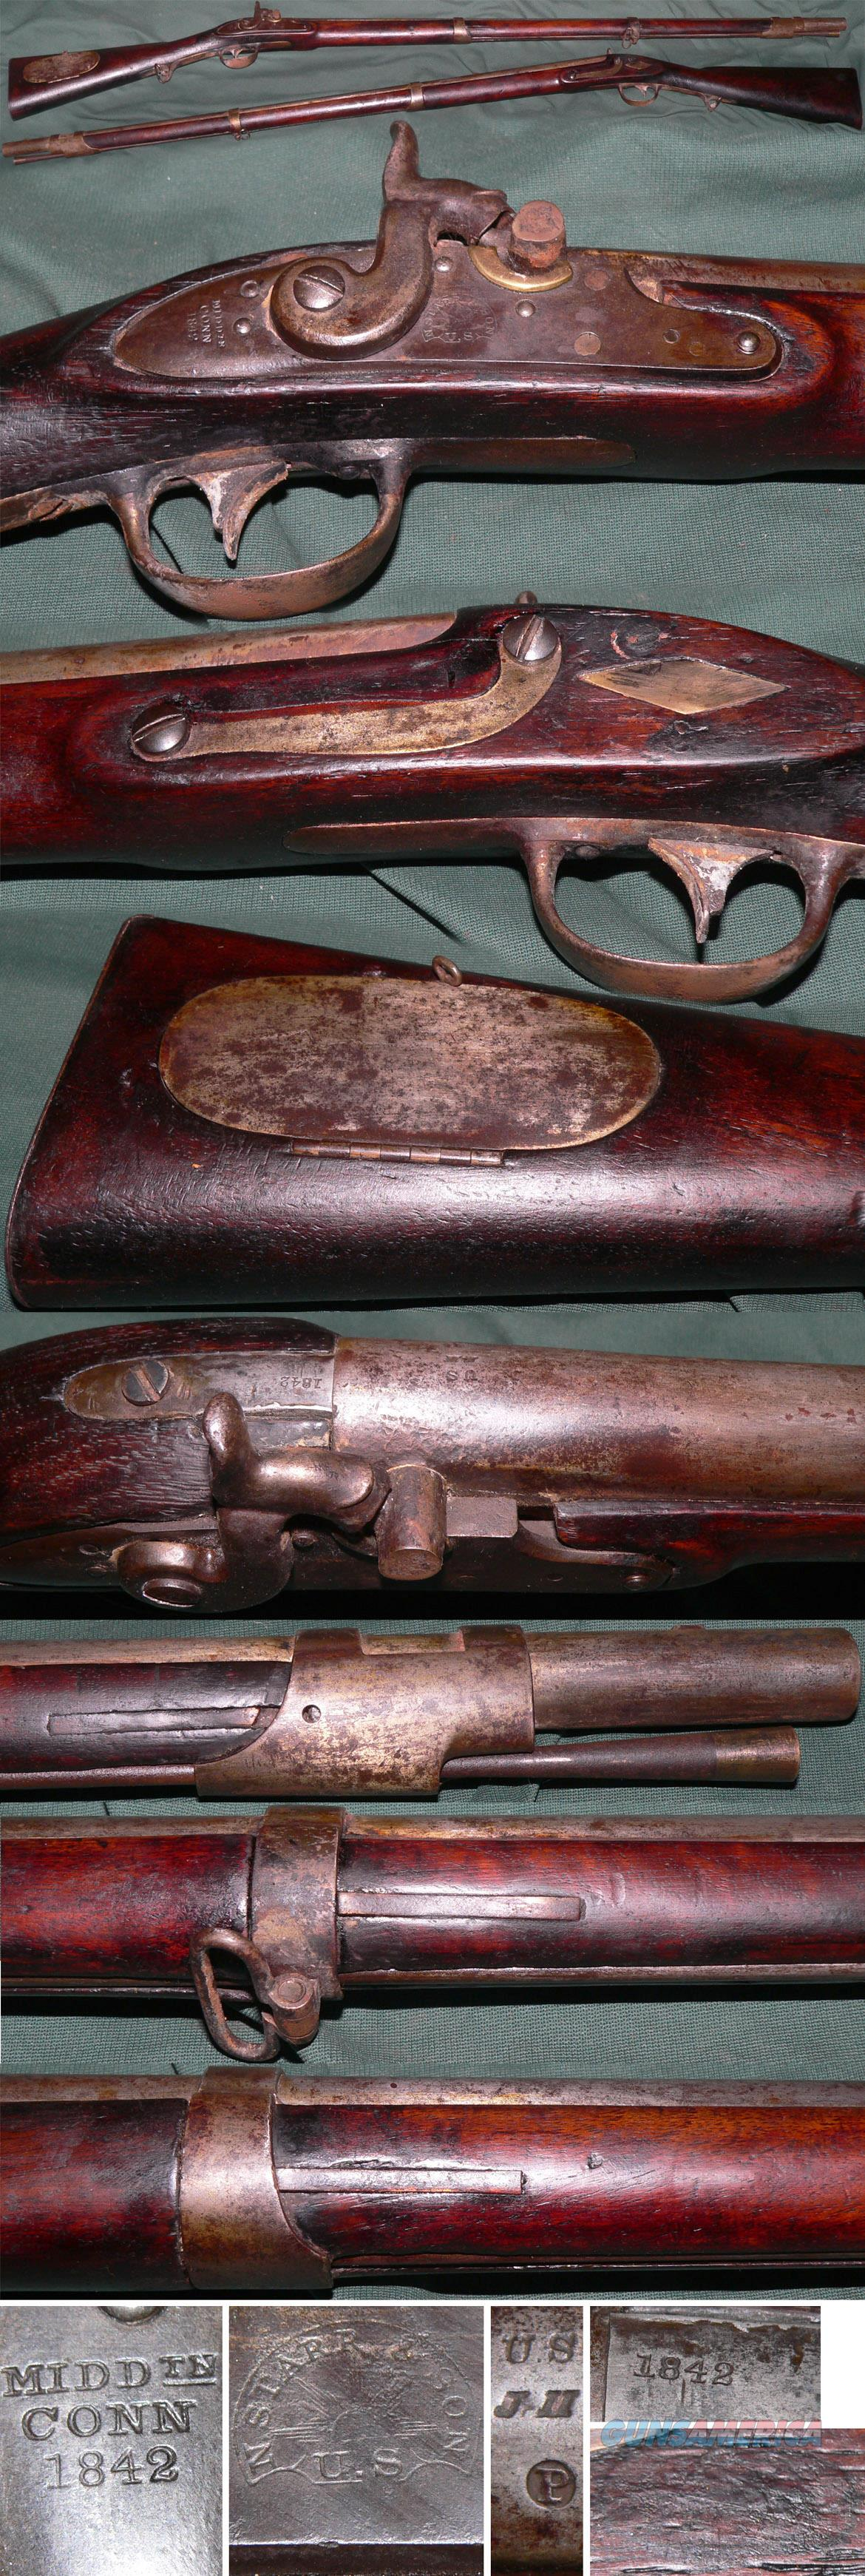 "US M1817 ""Common"" rifle by N. Starr, 1842  Guns > Rifles > Muzzleloading Pre-1899 Rifles (perc)"